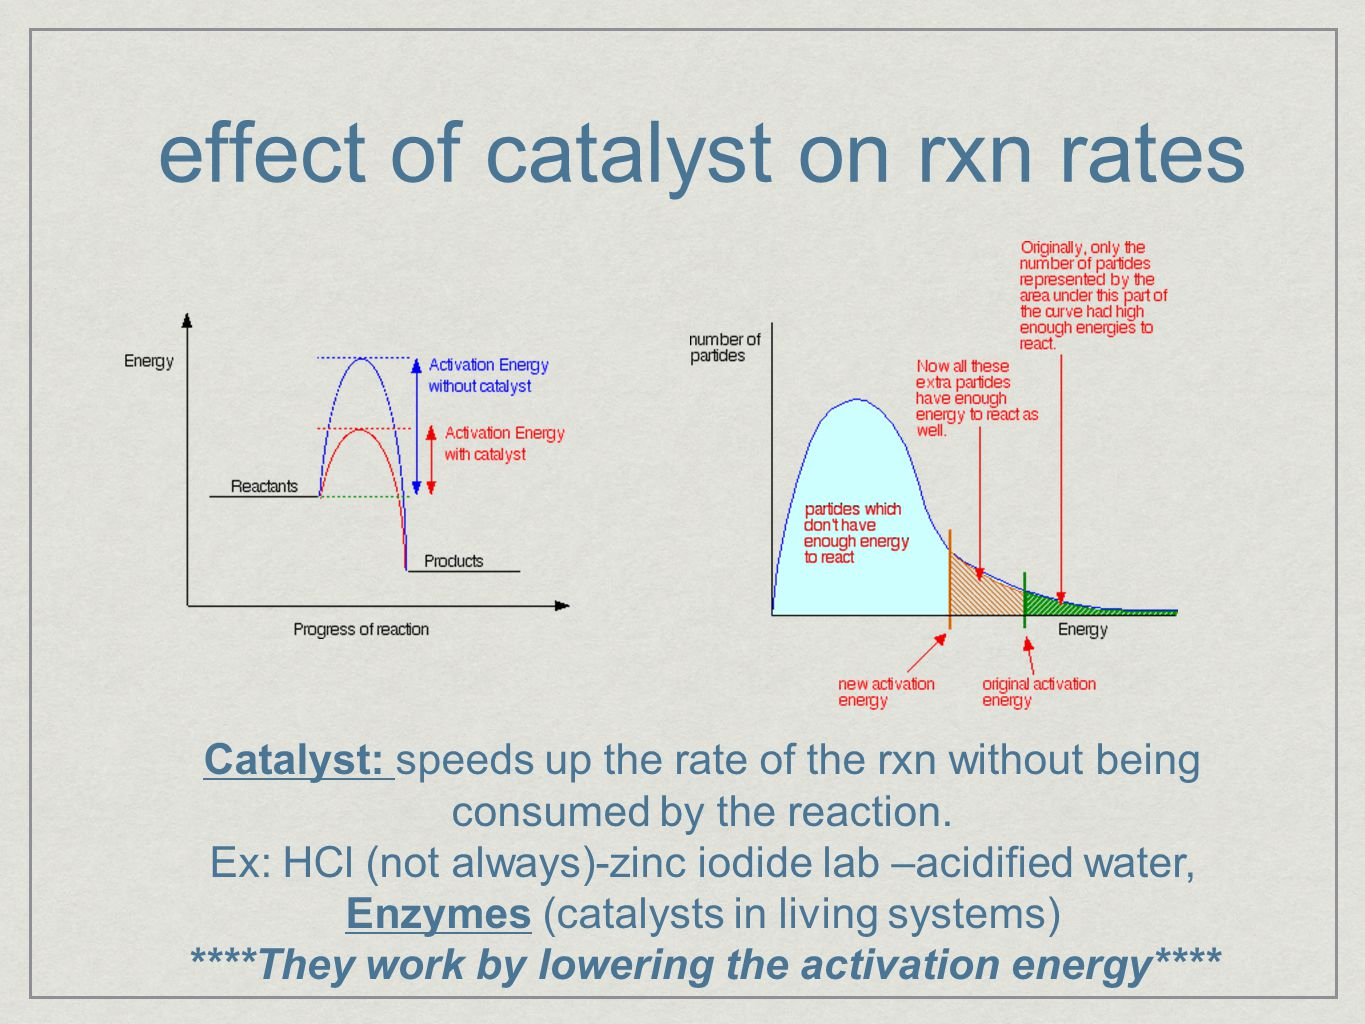 effect of catalyst on rxn rates Catalyst: speeds up the rate of the rxn without being consumed by the reaction. Ex: HCl (not always)-zinc iodide lab –